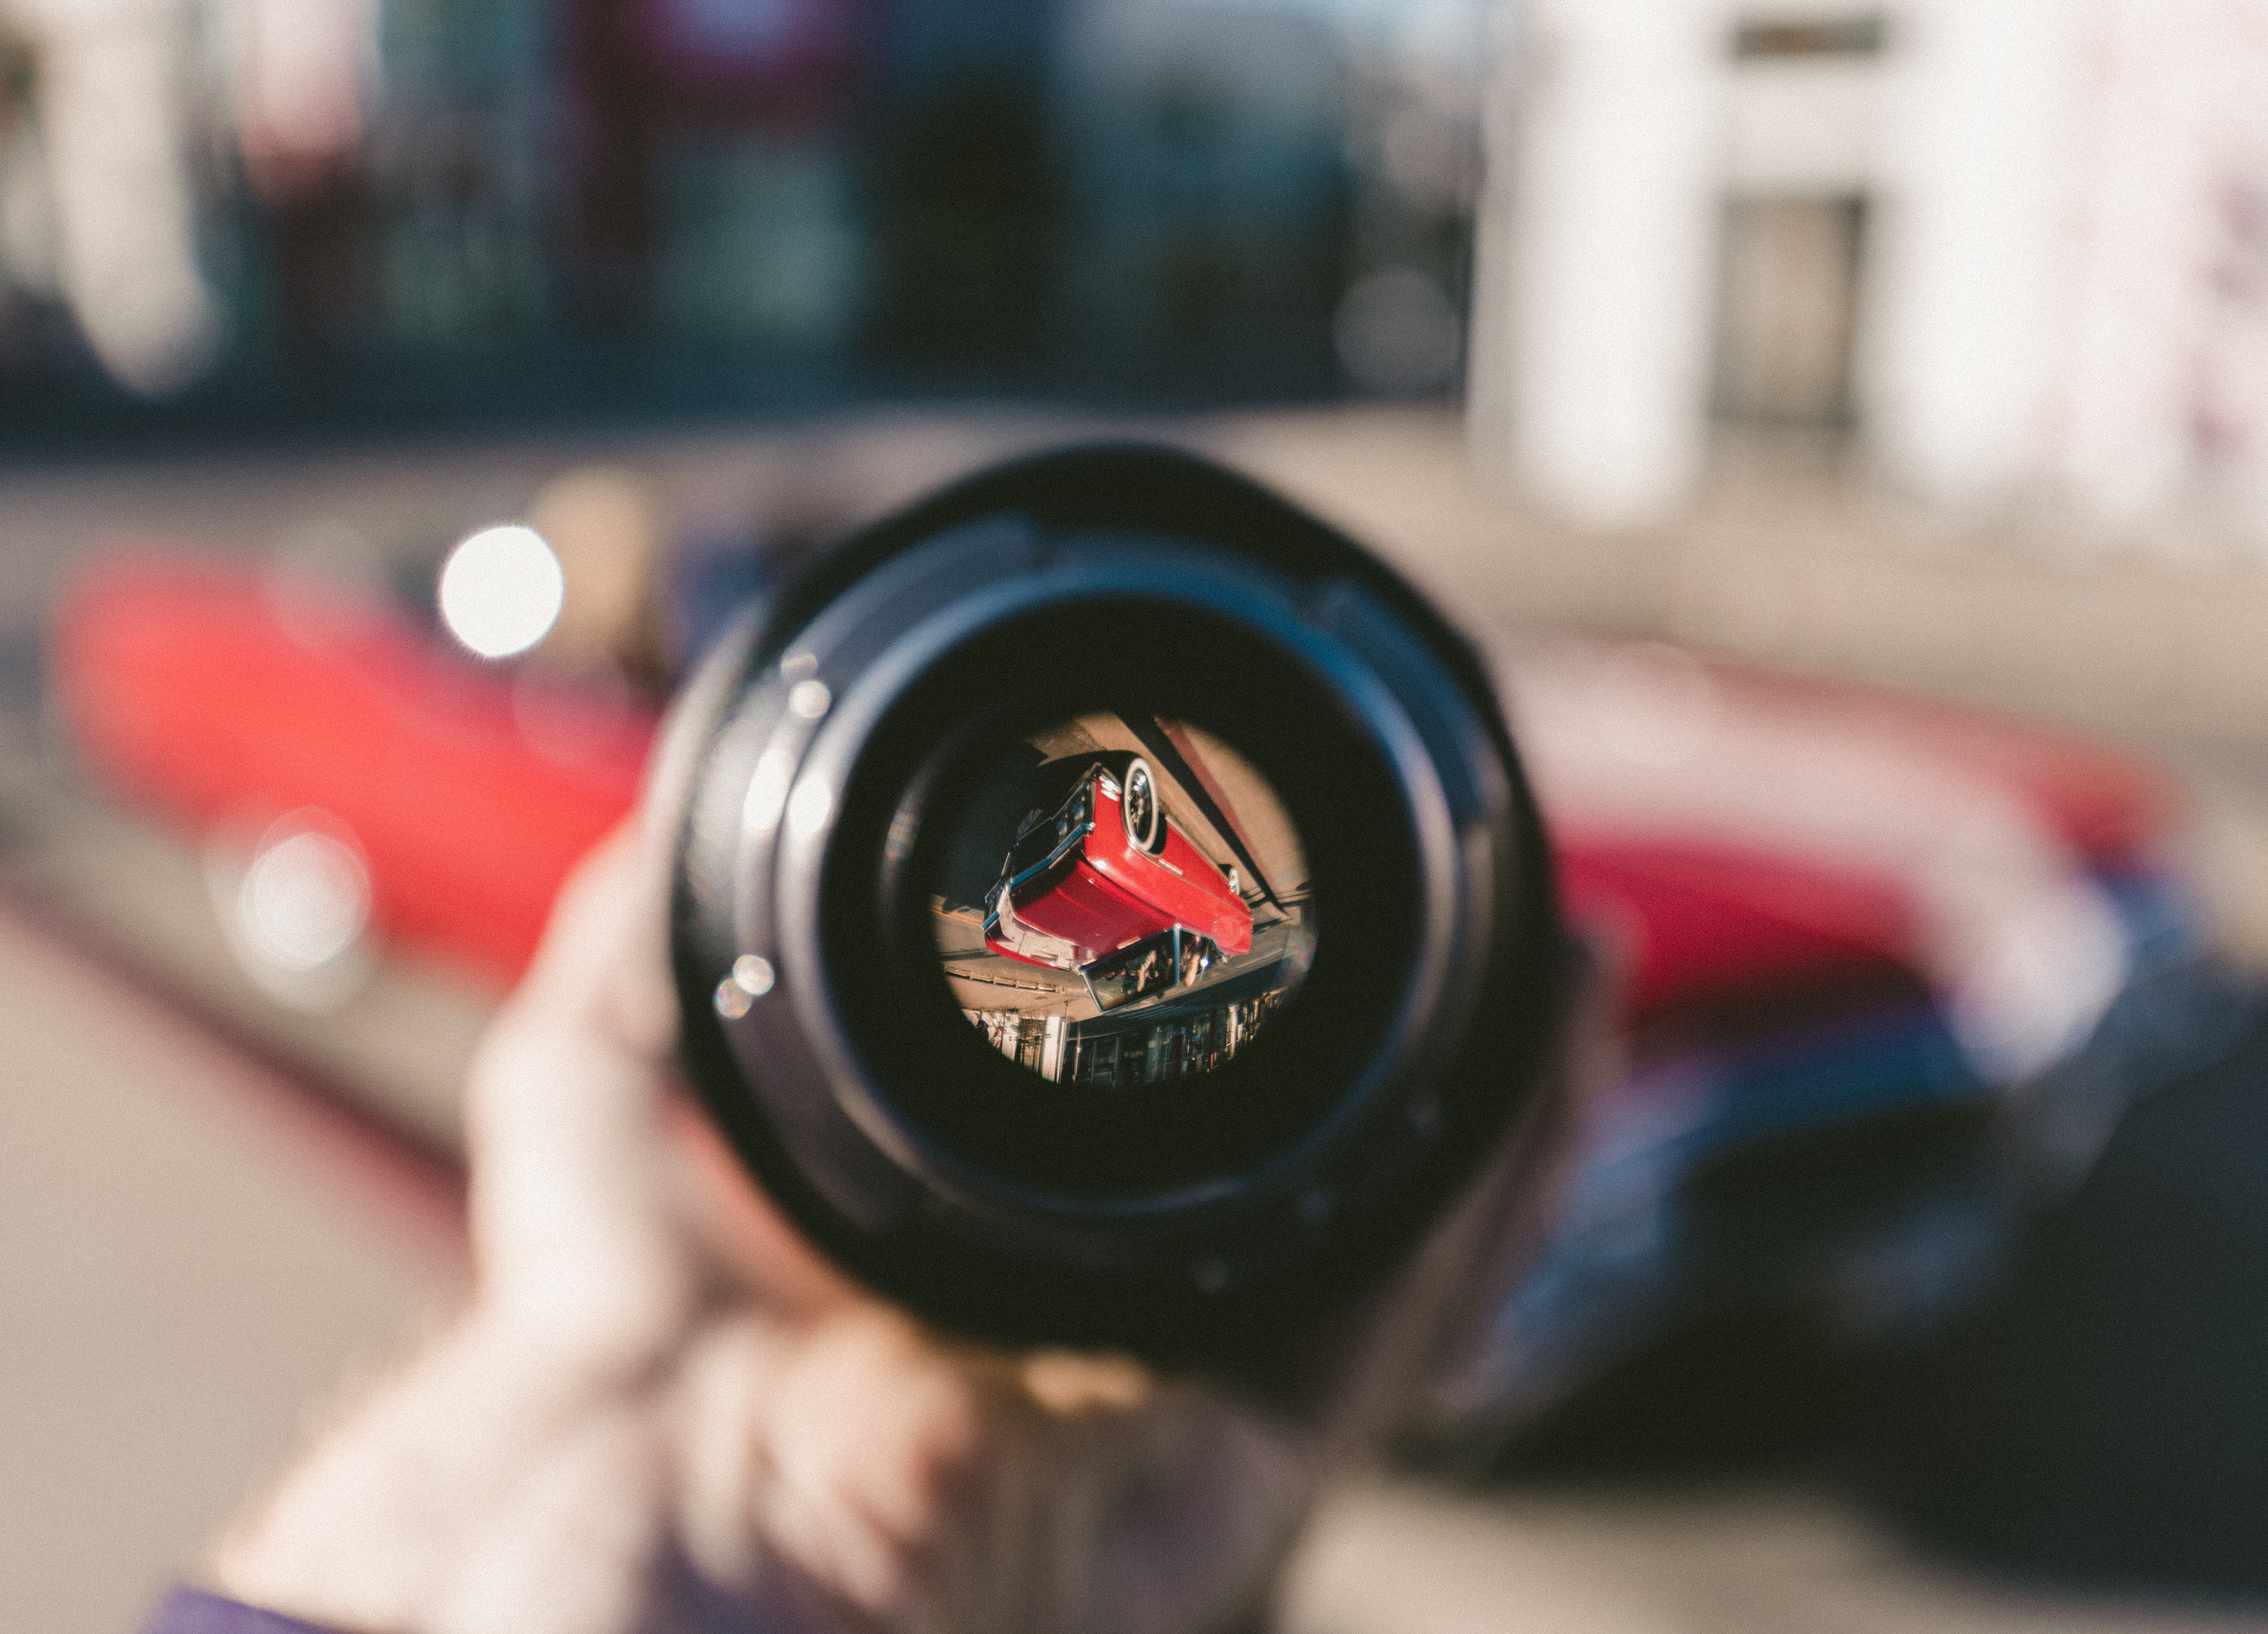 A classic red car looks inverted through a camera lens in Los Angeles.